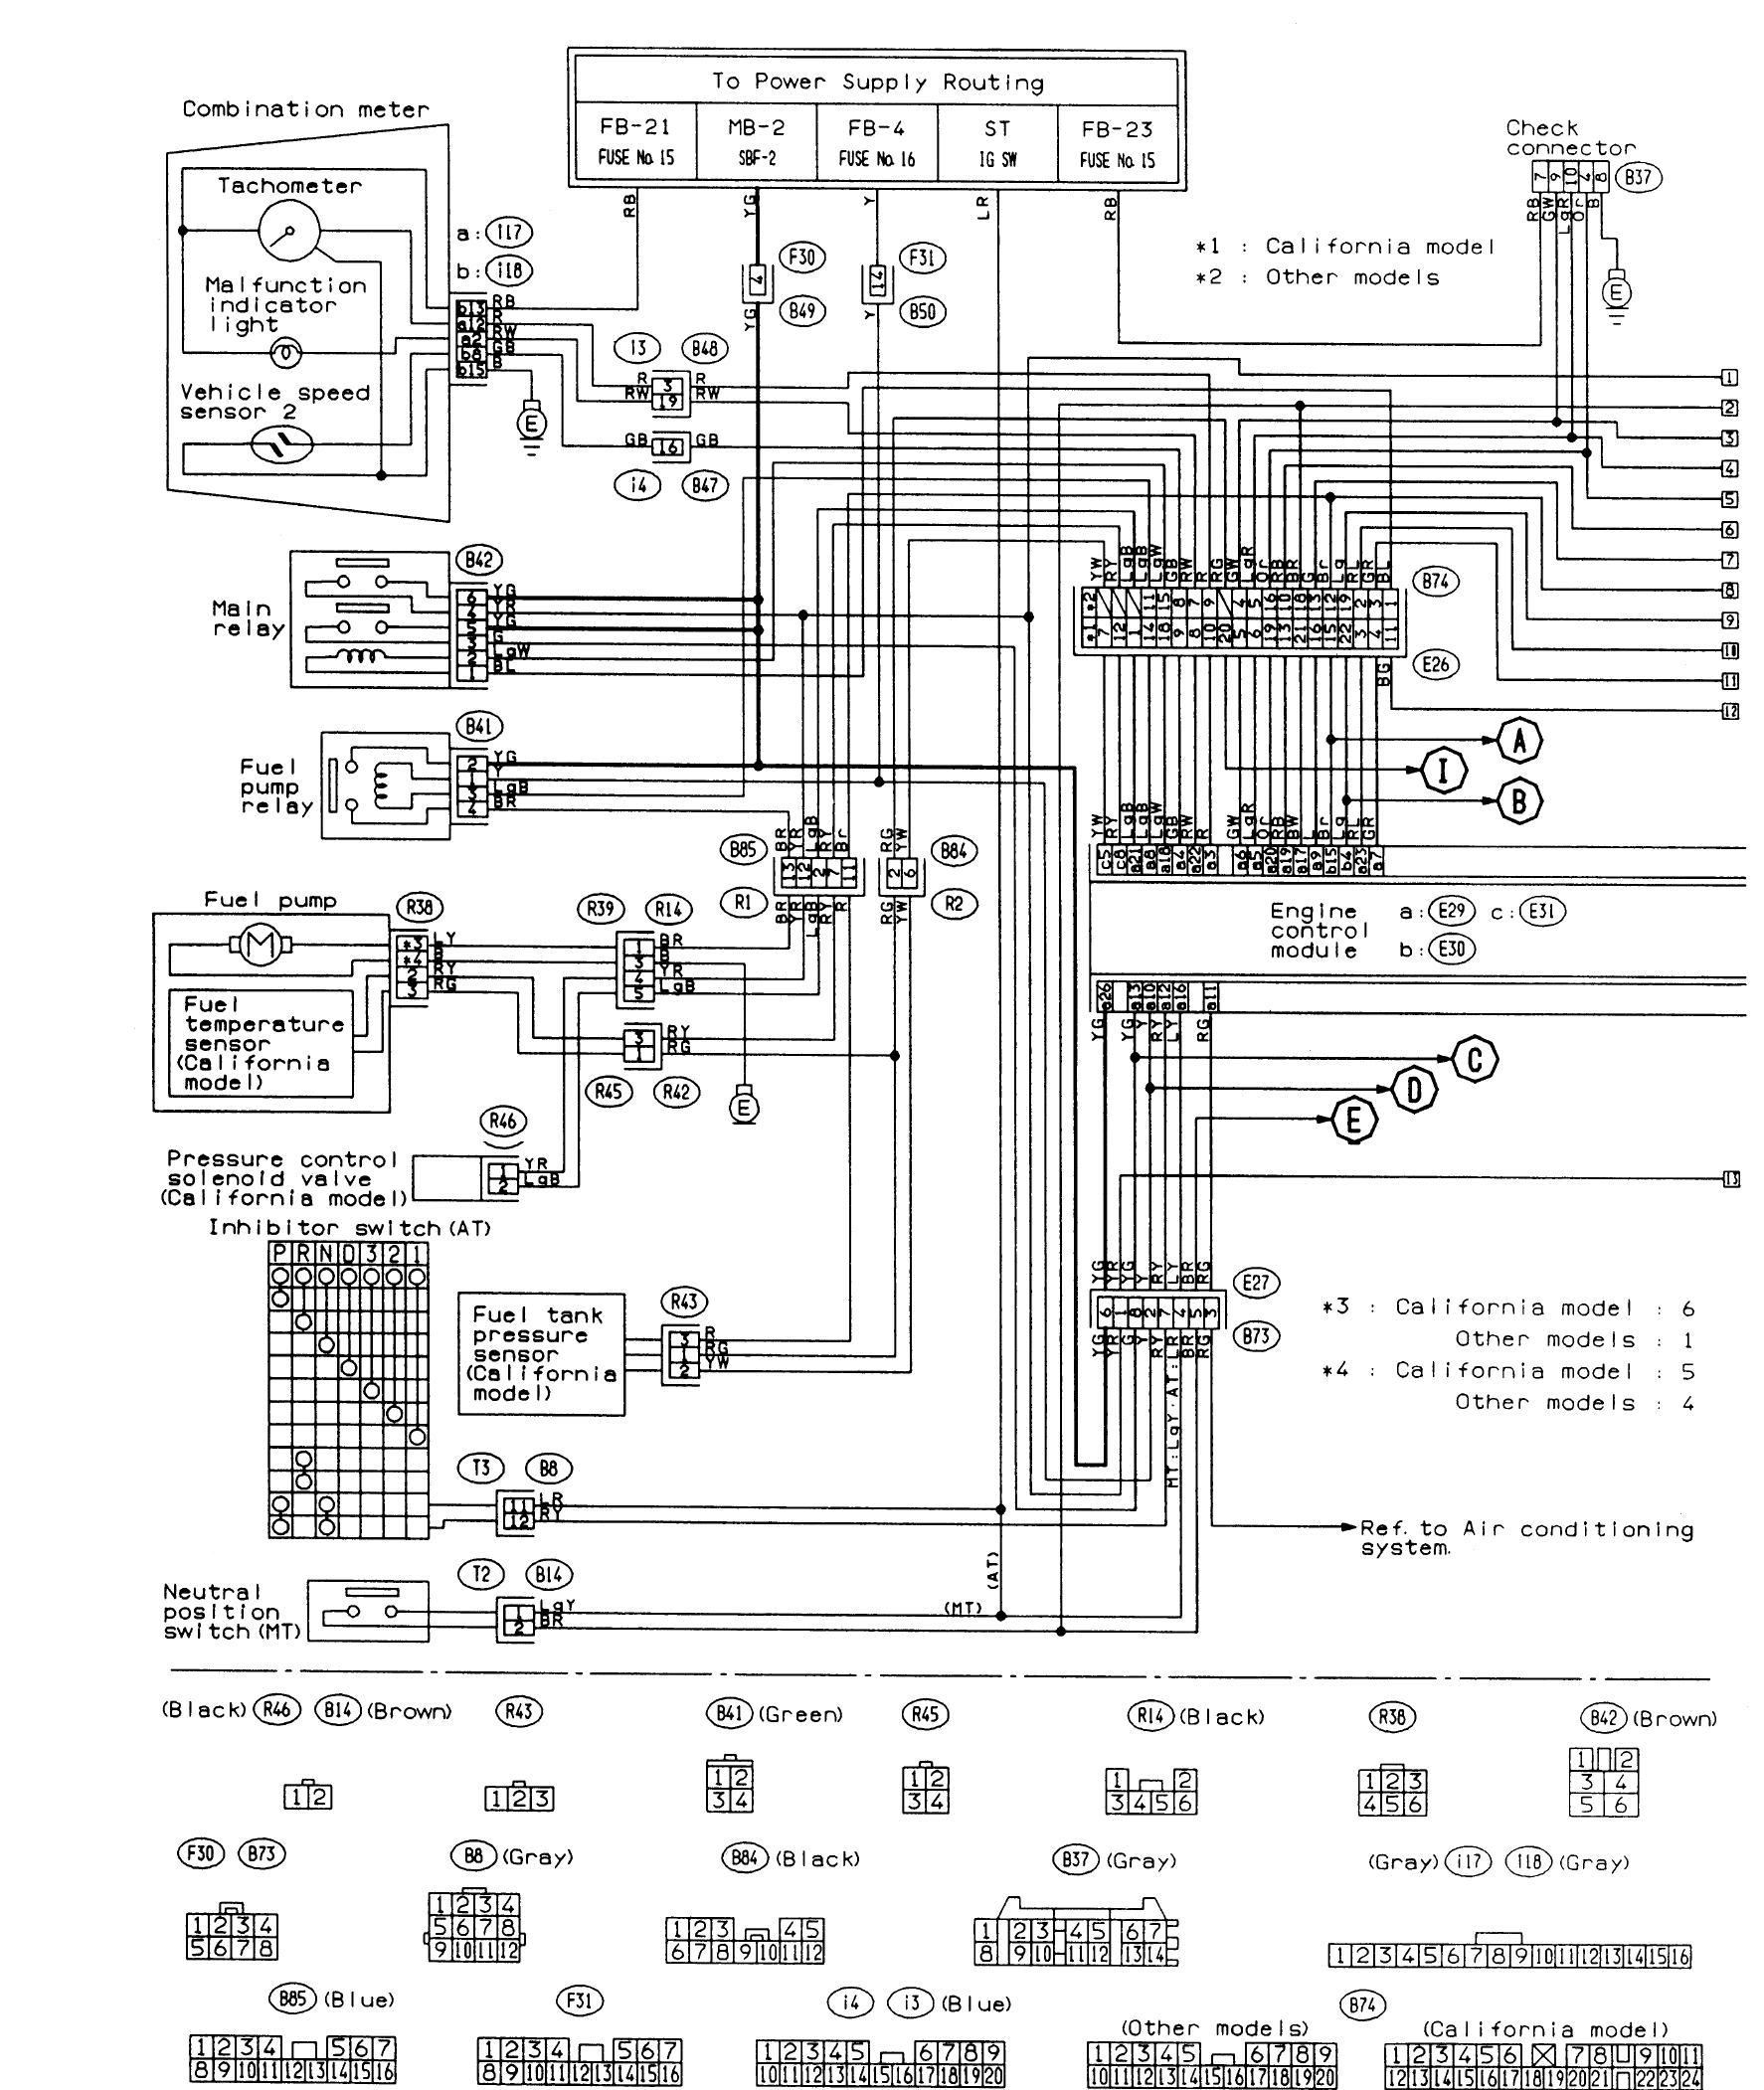 subaru ecu wiring diagram FUSlrCX 2003 subaru outback wiring diagram 2003 subaru outback engine panasonic cq-c5301u wiring diagram at reclaimingppi.co